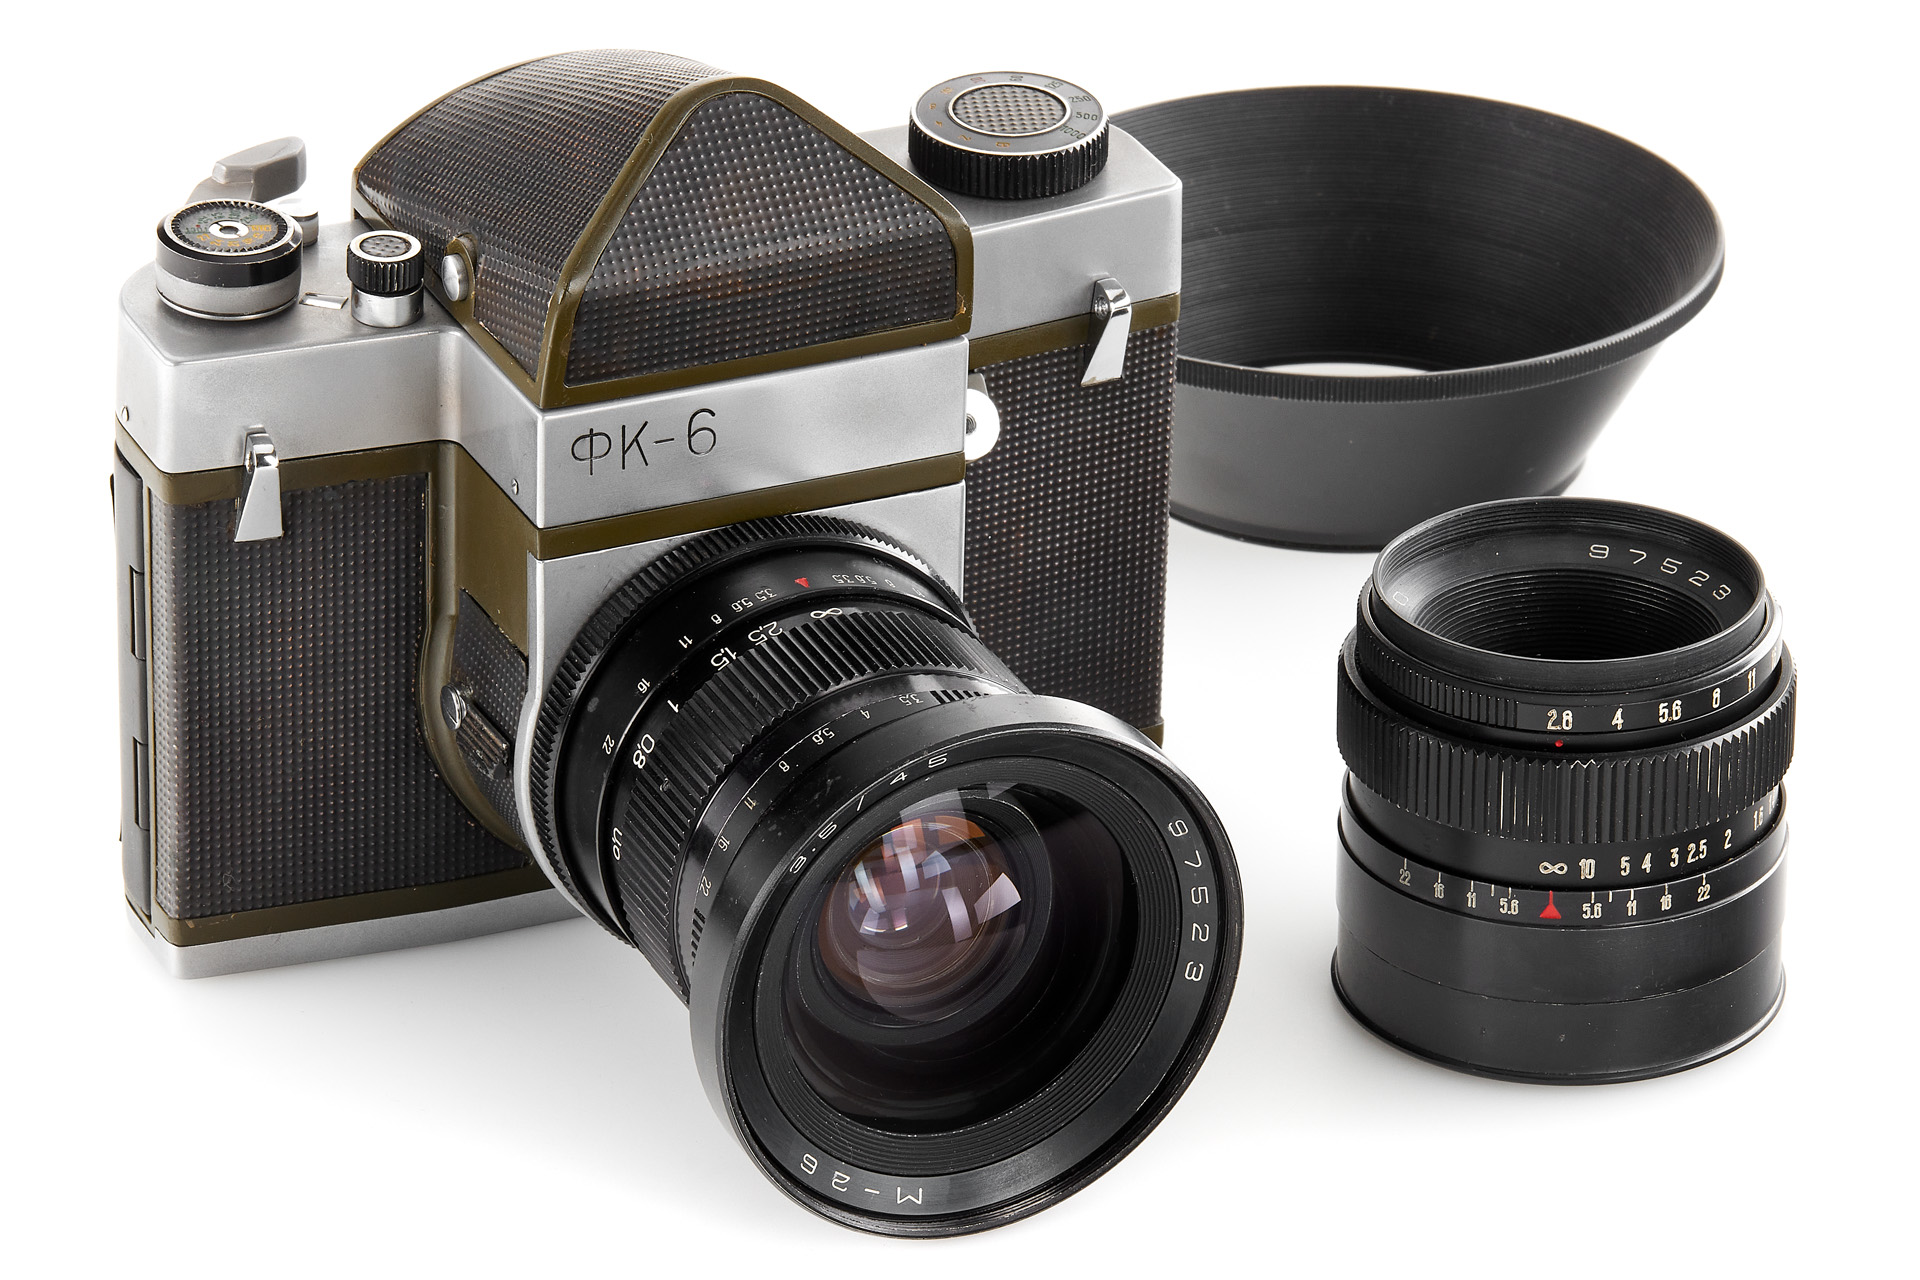 FK-6 and lenses (Pic: Leitz Photographica)